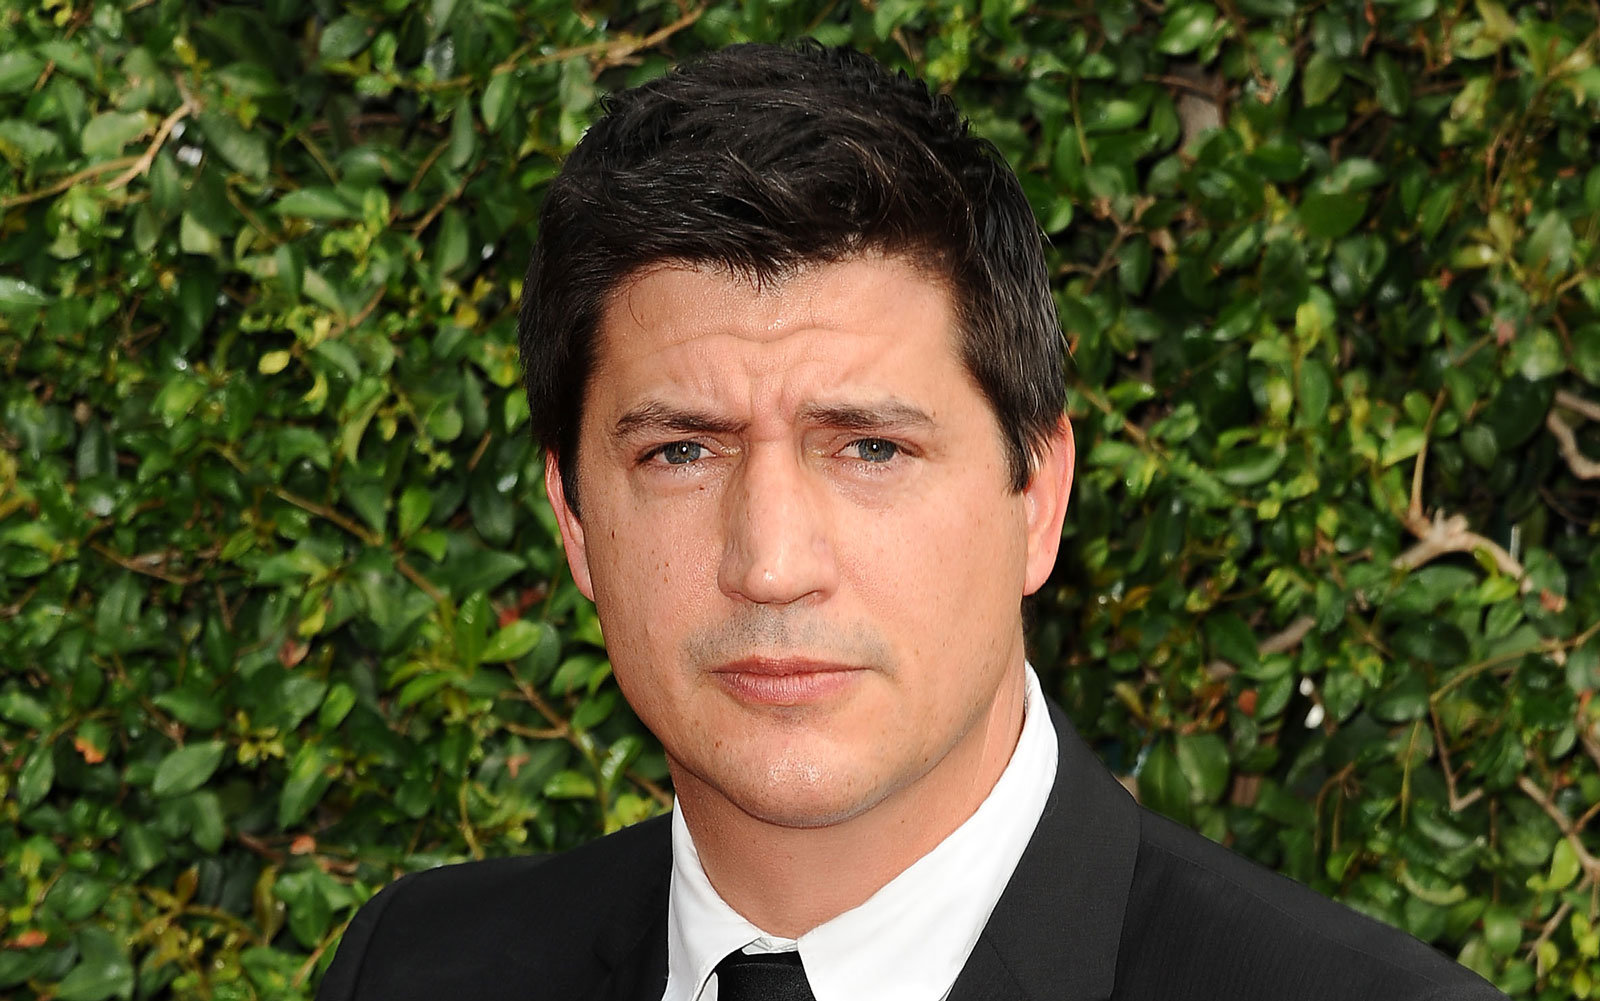 Ken Marino is trying to help KLM explain to people that it's an airline.